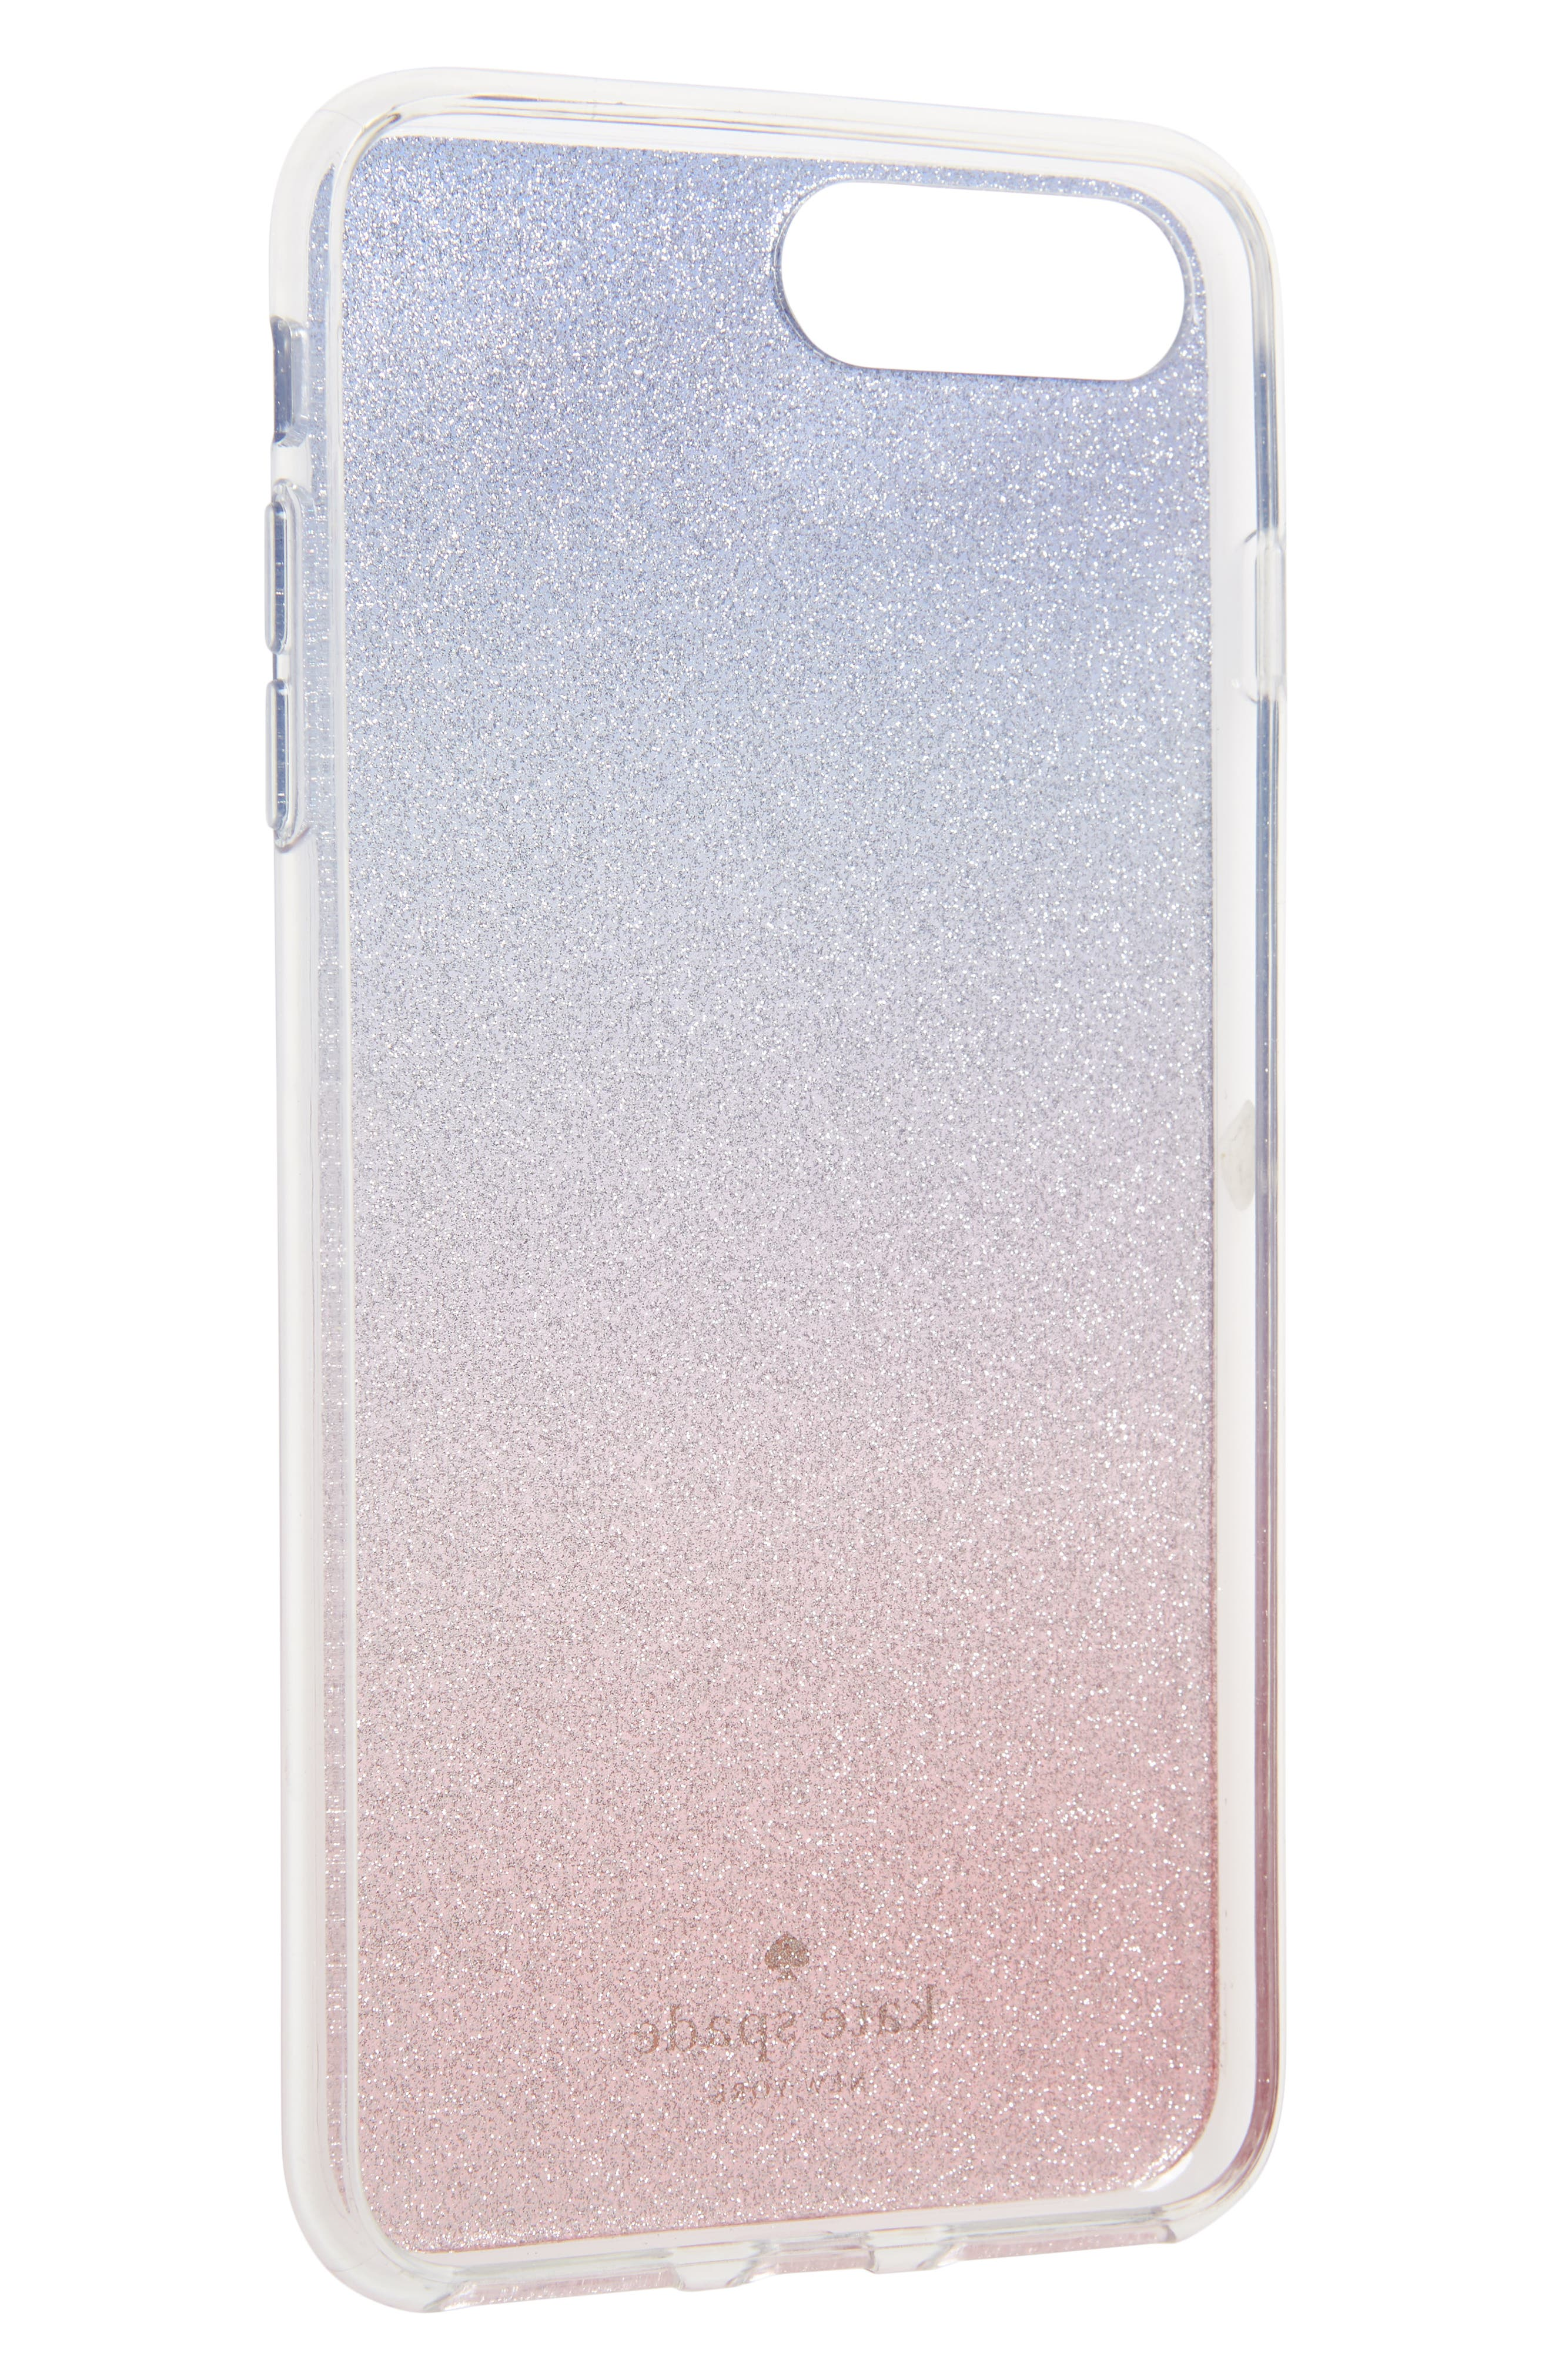 KATE SPADE NEW YORK,                             ombré sunset glitter iPhone 7/8 & 7/8 Plus case,                             Alternate thumbnail 2, color,                             655